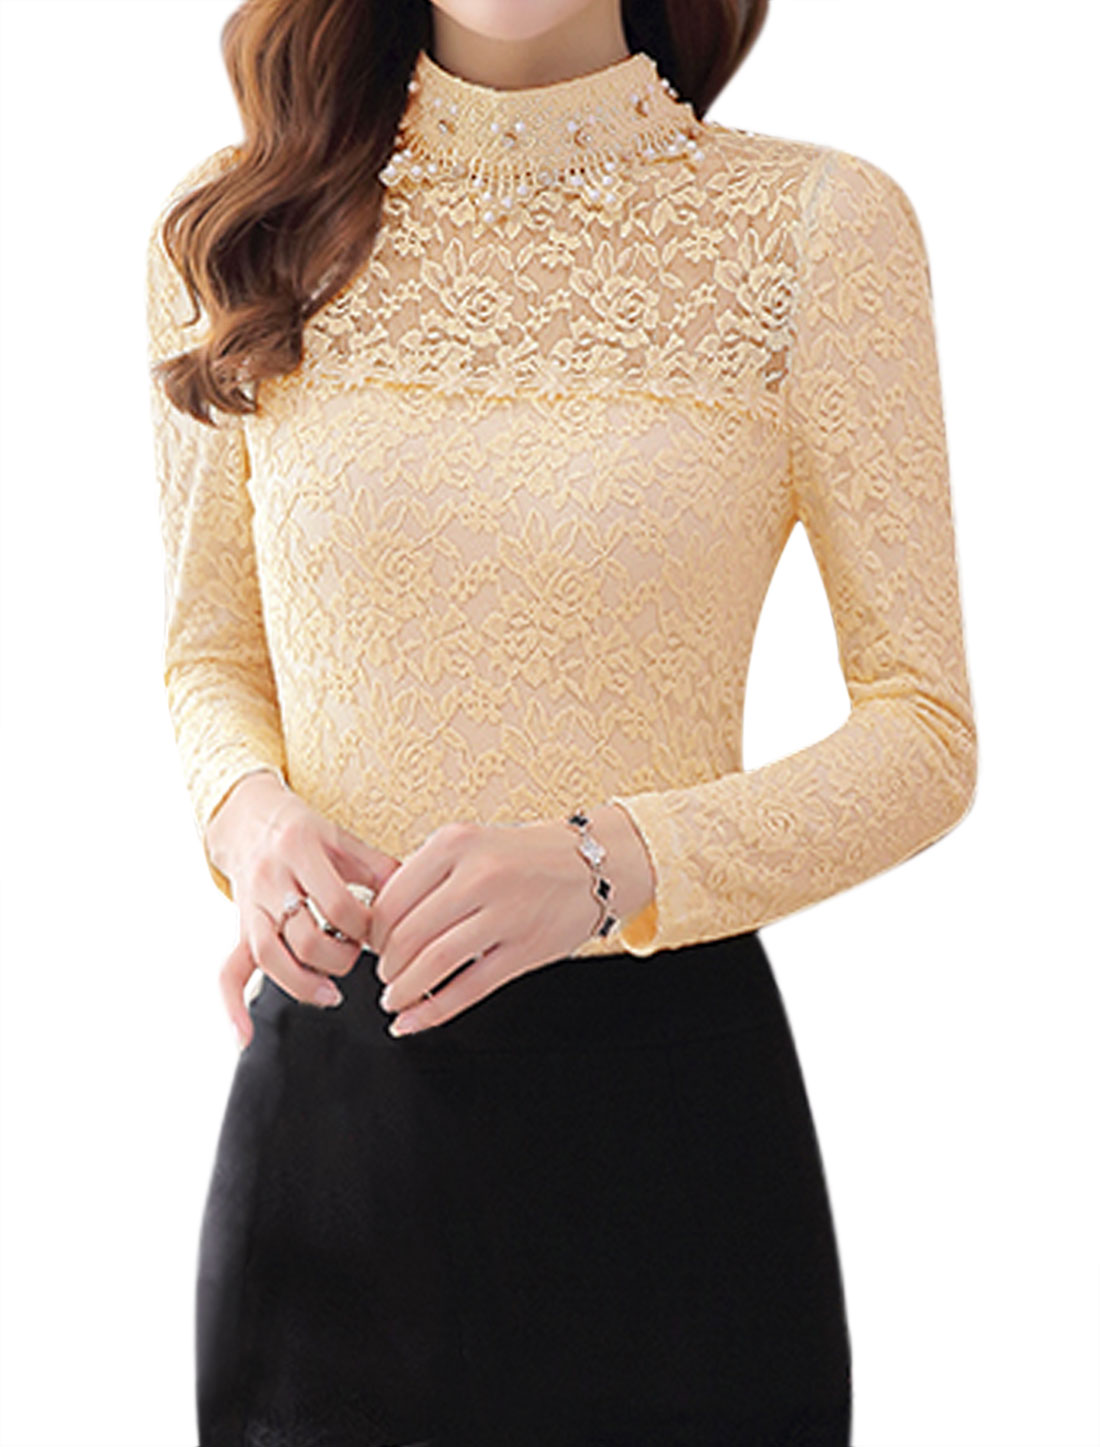 Ladies Long-Sleeved Rhinestone Embellished Slim Fit Lace Shirt Beige M